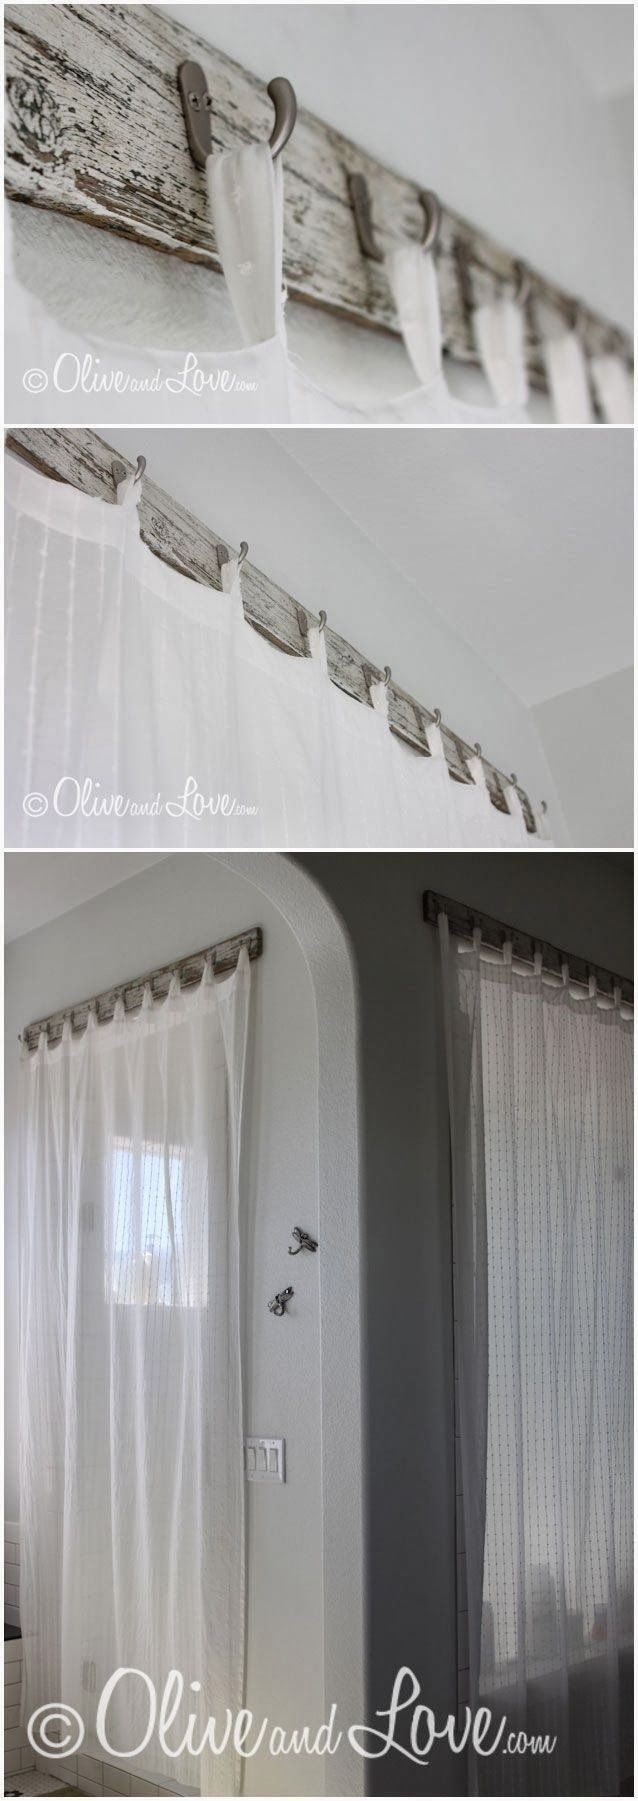 TOP 10 Decorative DIY Curtain Designs